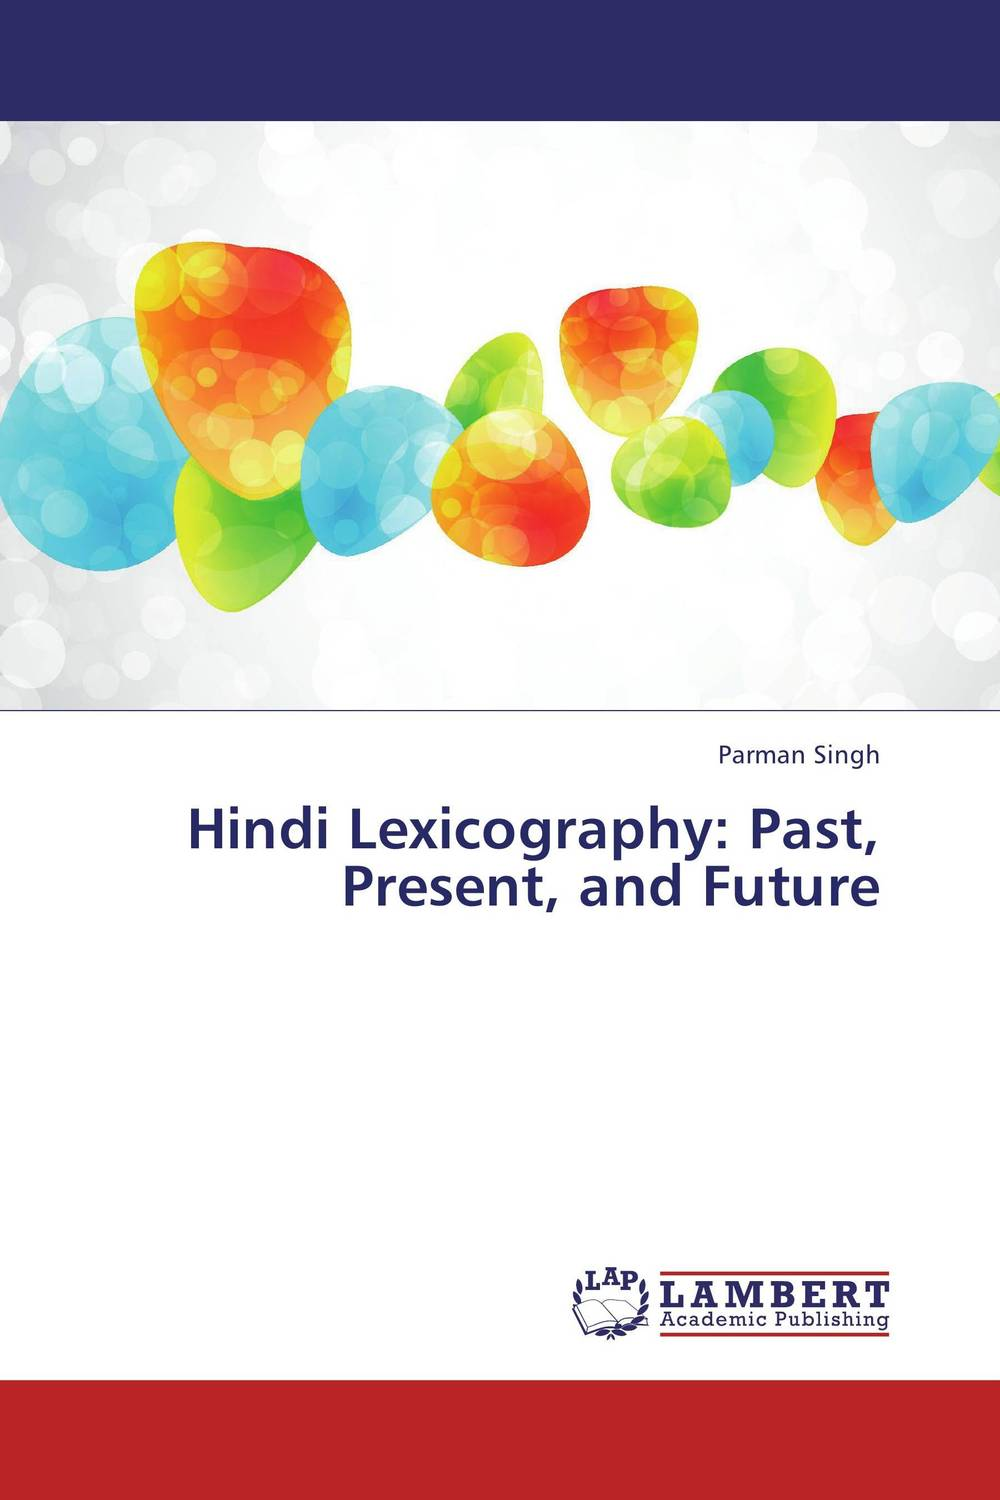 Hindi Lexicography: Past, Present, and Future